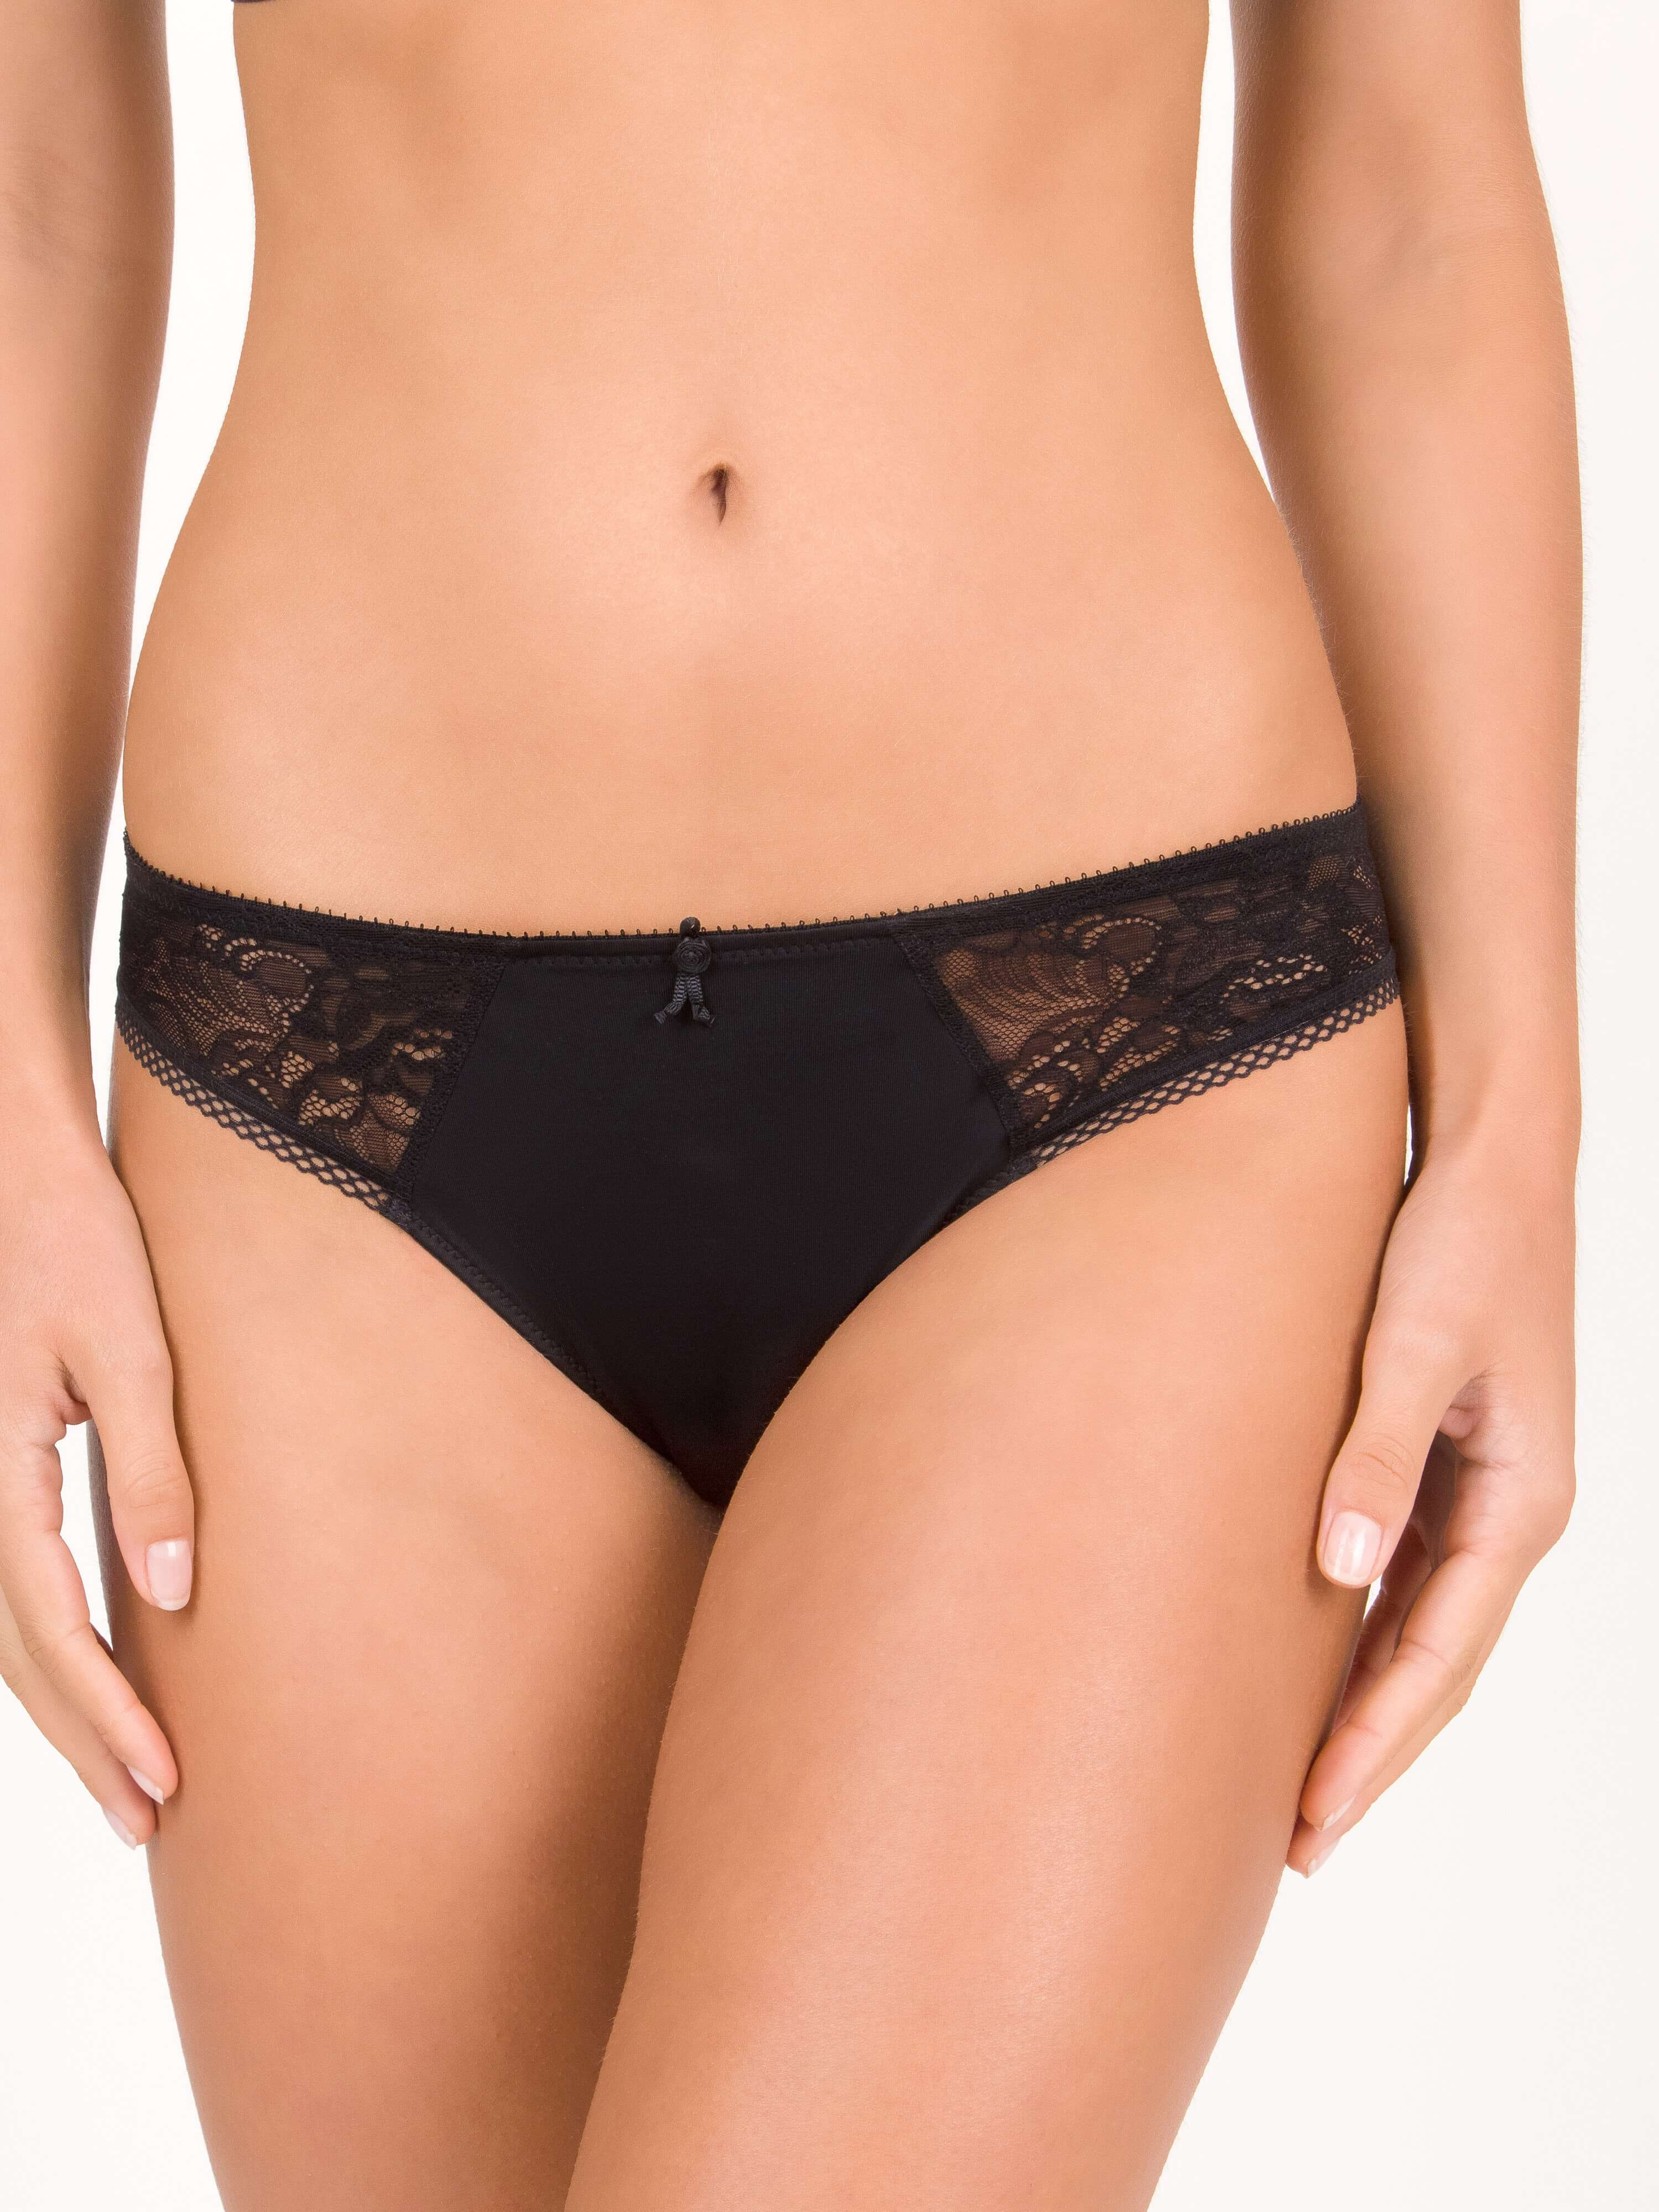 felina-conturelle-secret-garden-810822black